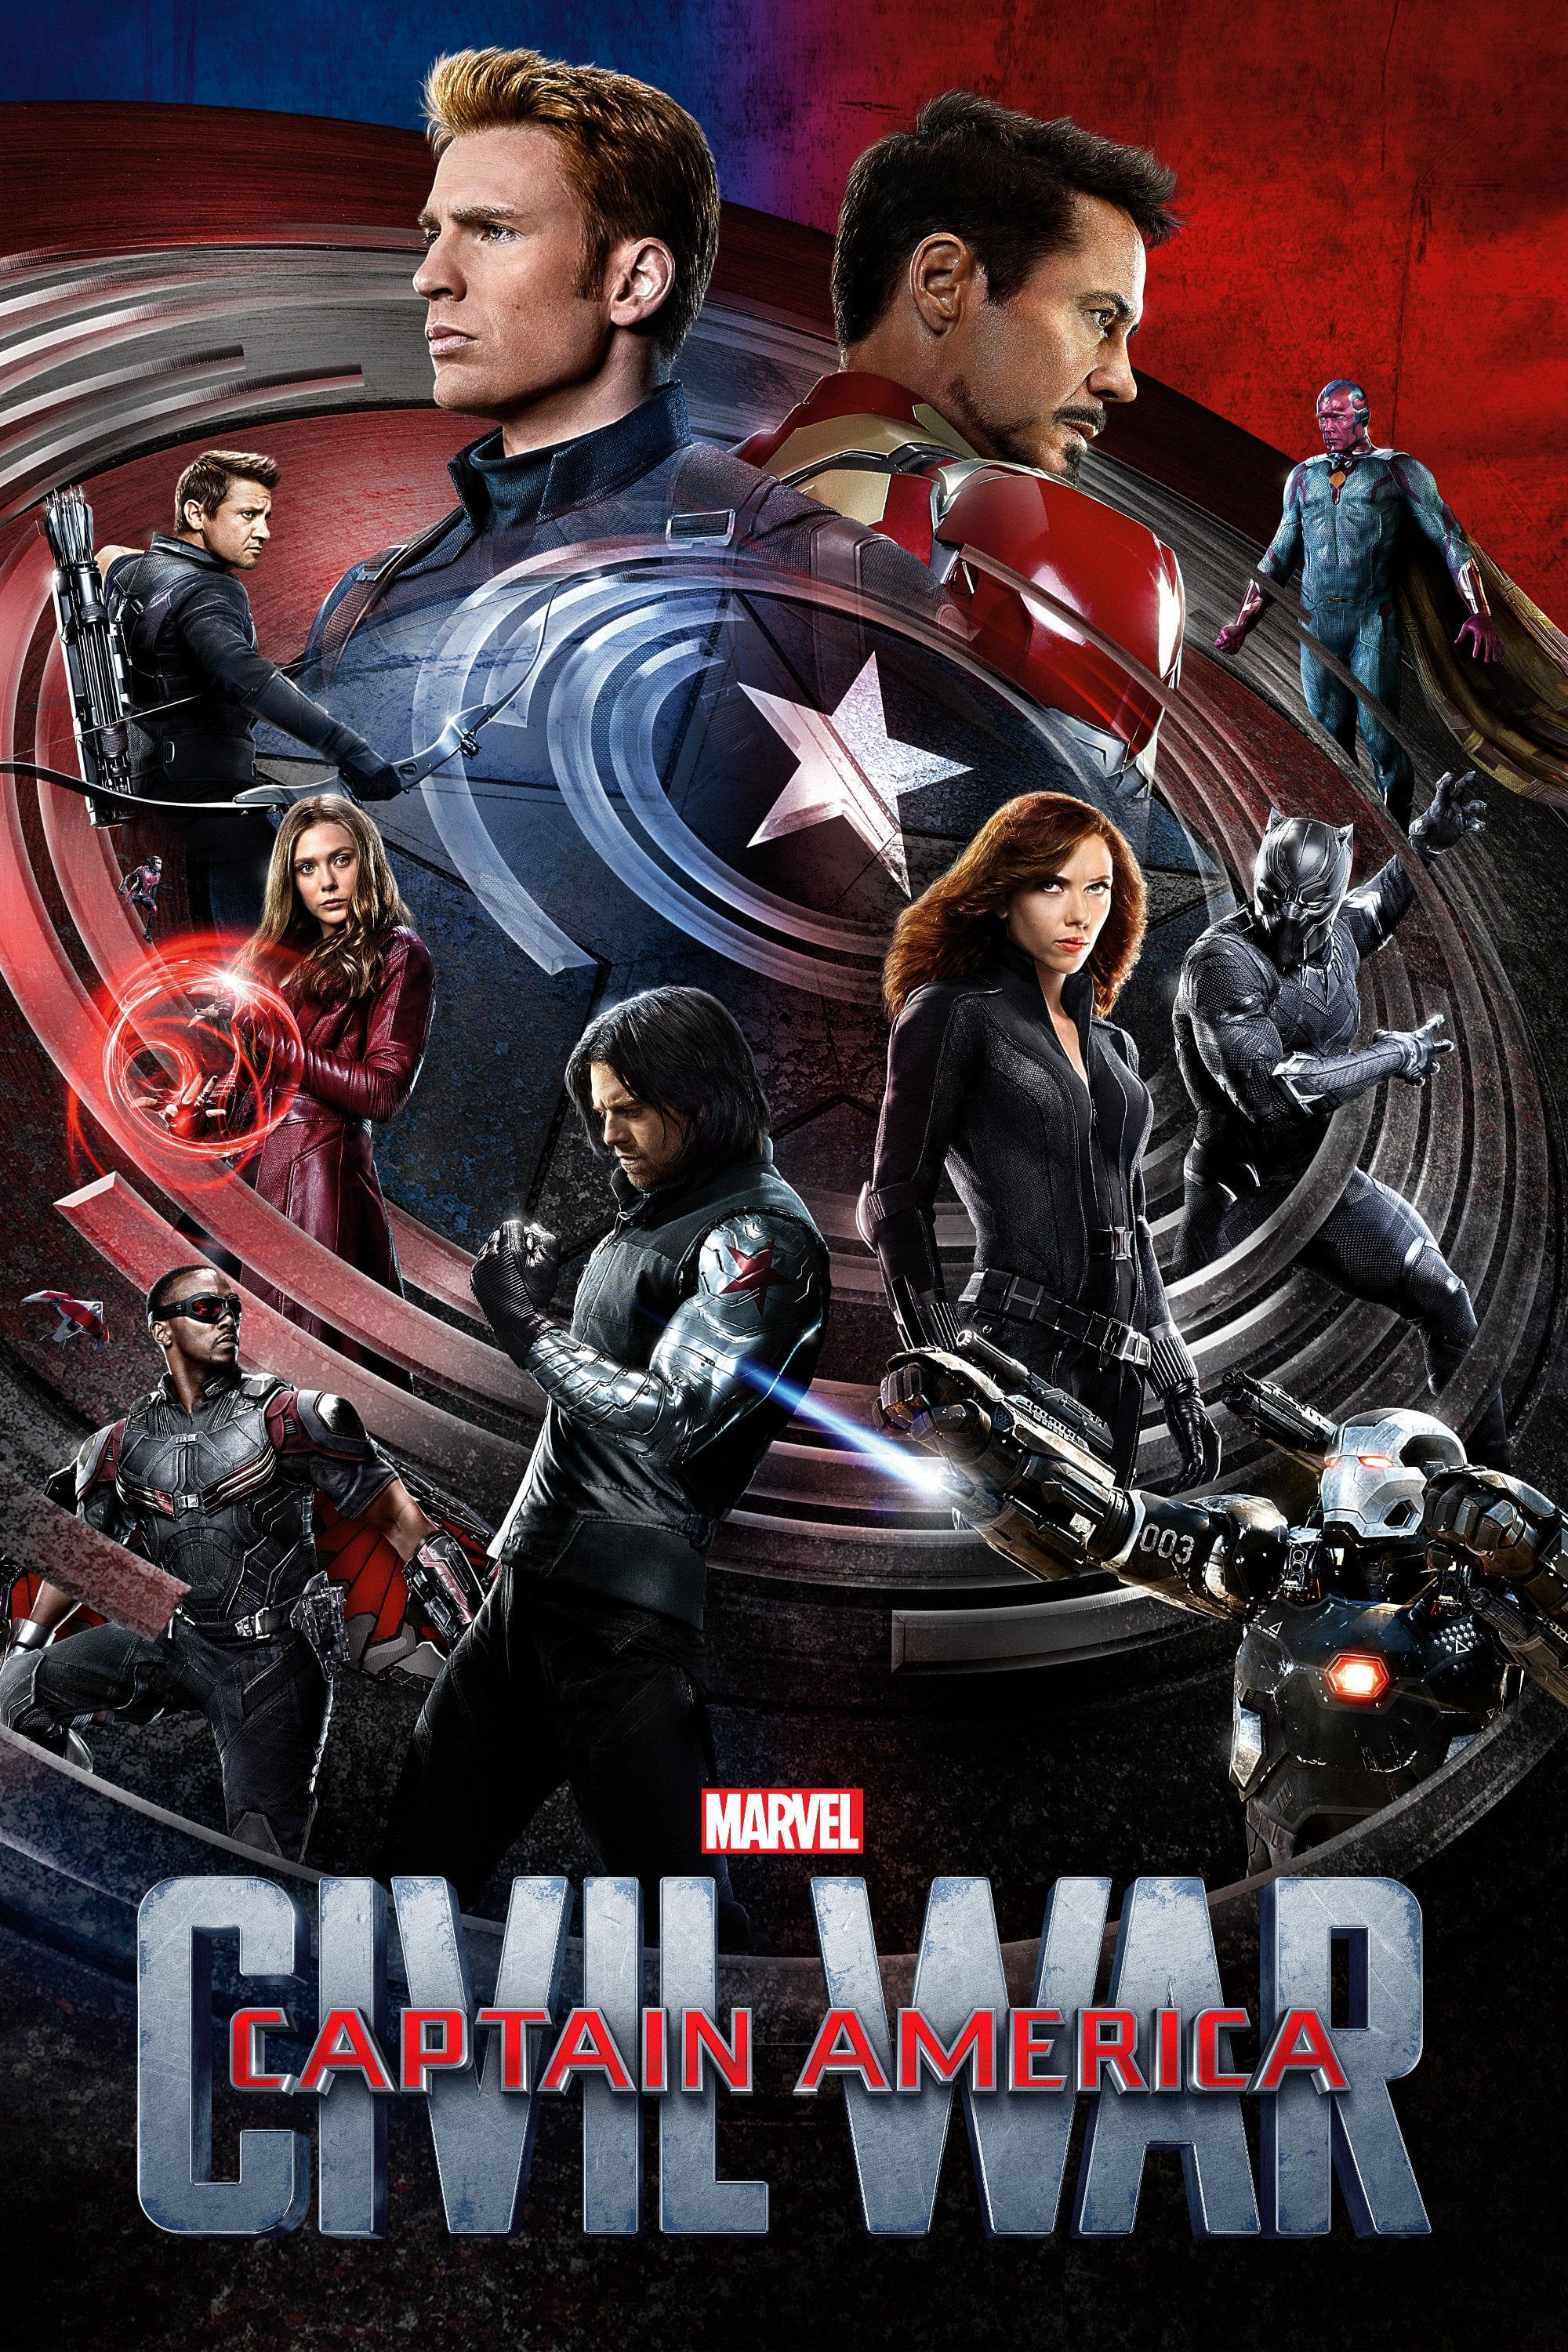 Marvel Movies Wallpaper for iPhone from ginpeliculas.xyz